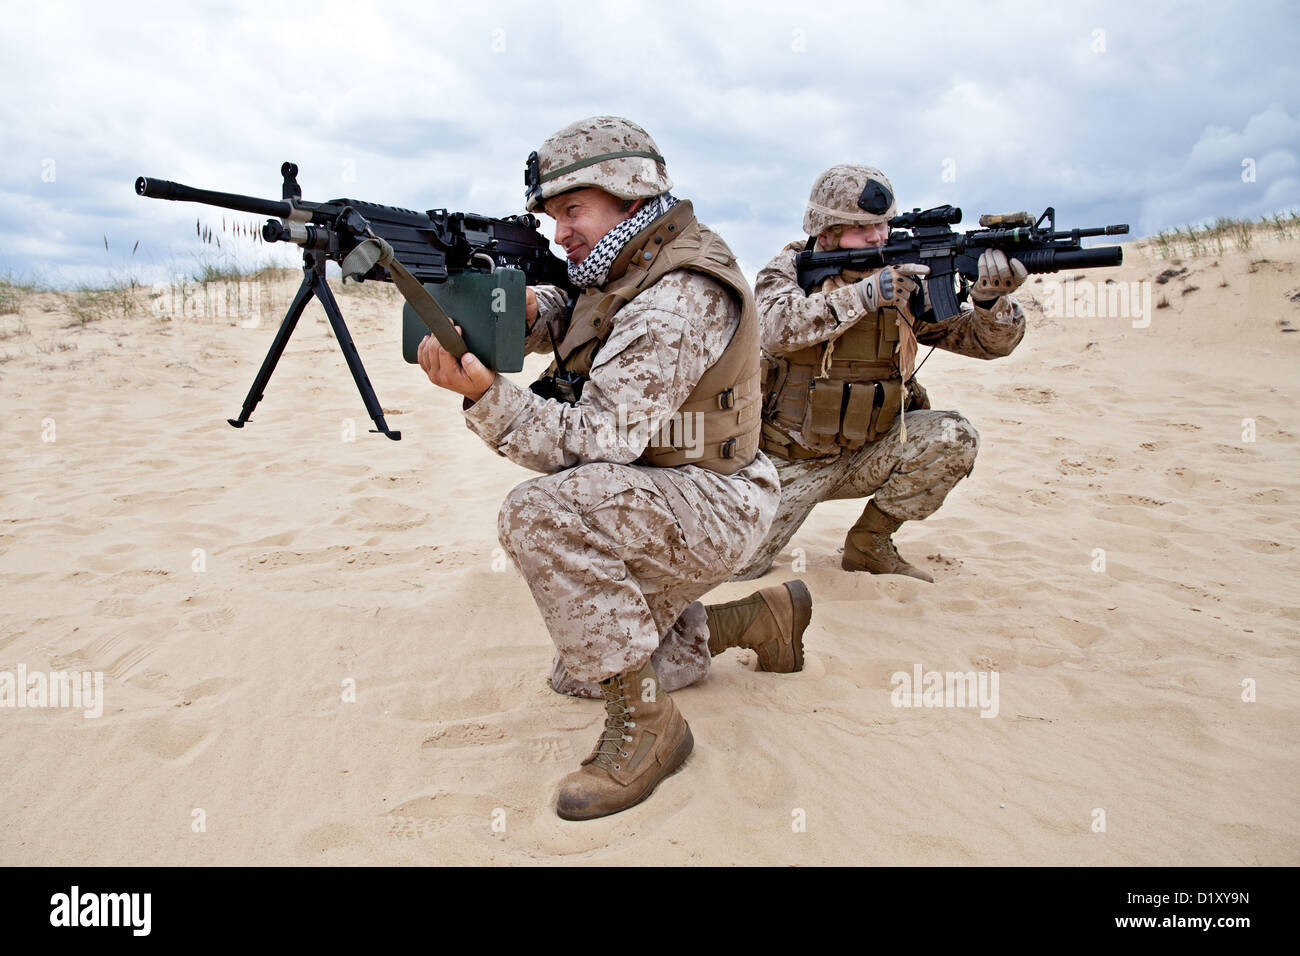 US marines in action - Stock Image